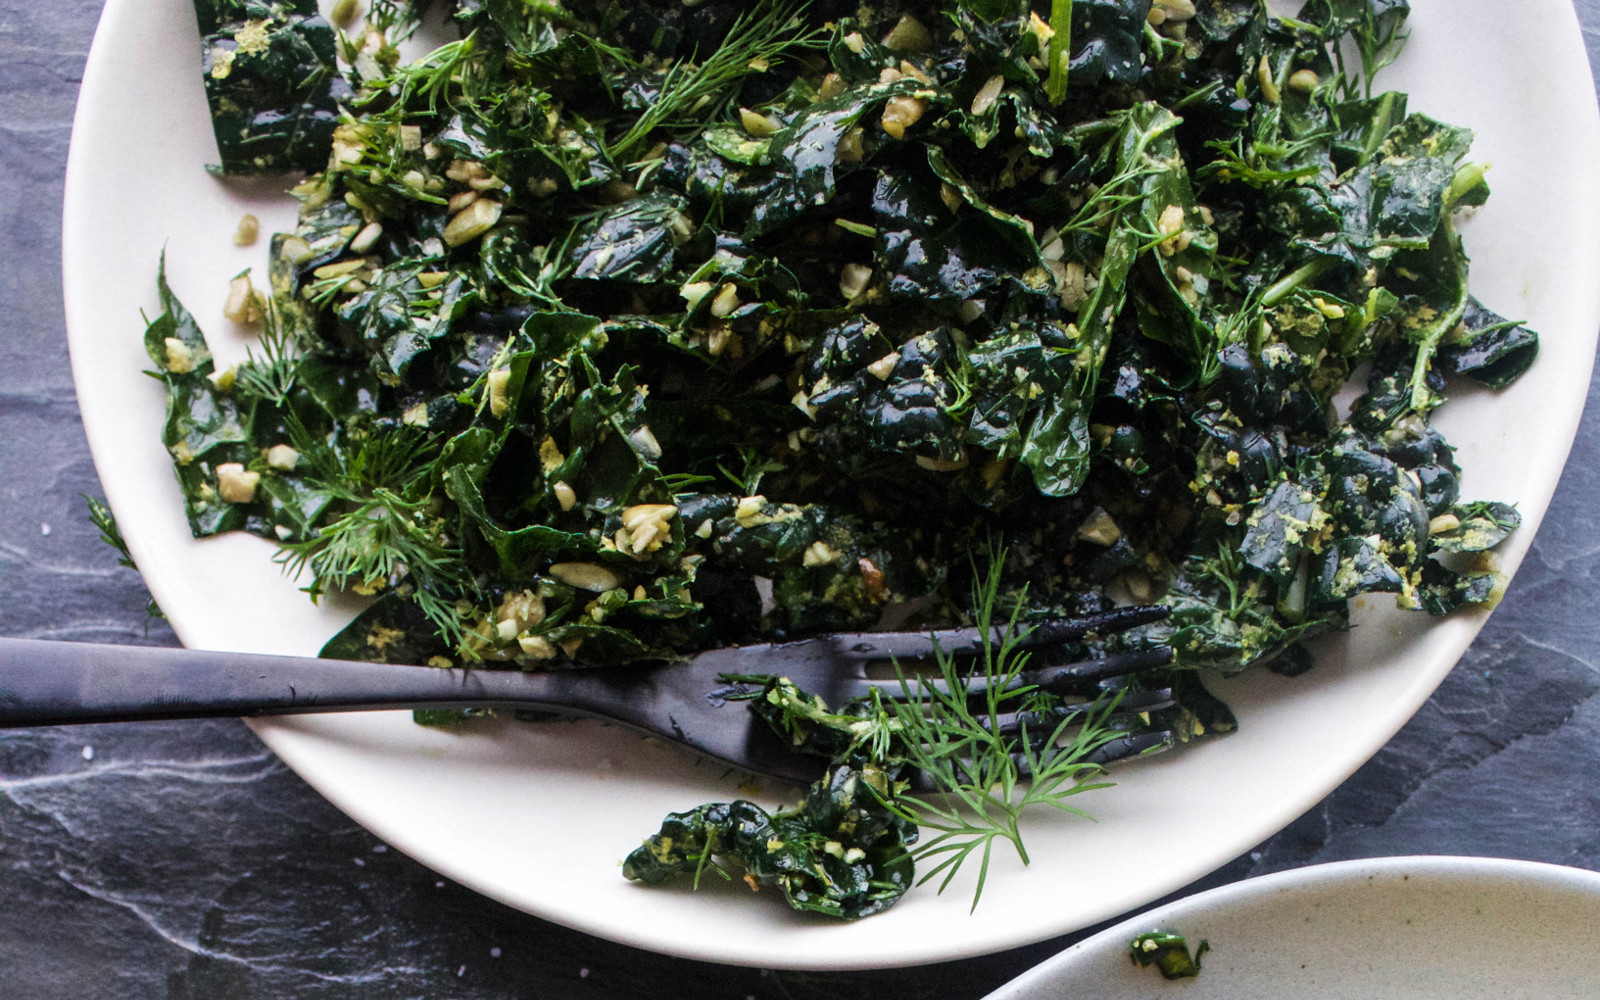 Gluten-Free Vegan Herb and Garlic Massaged Kale Salad